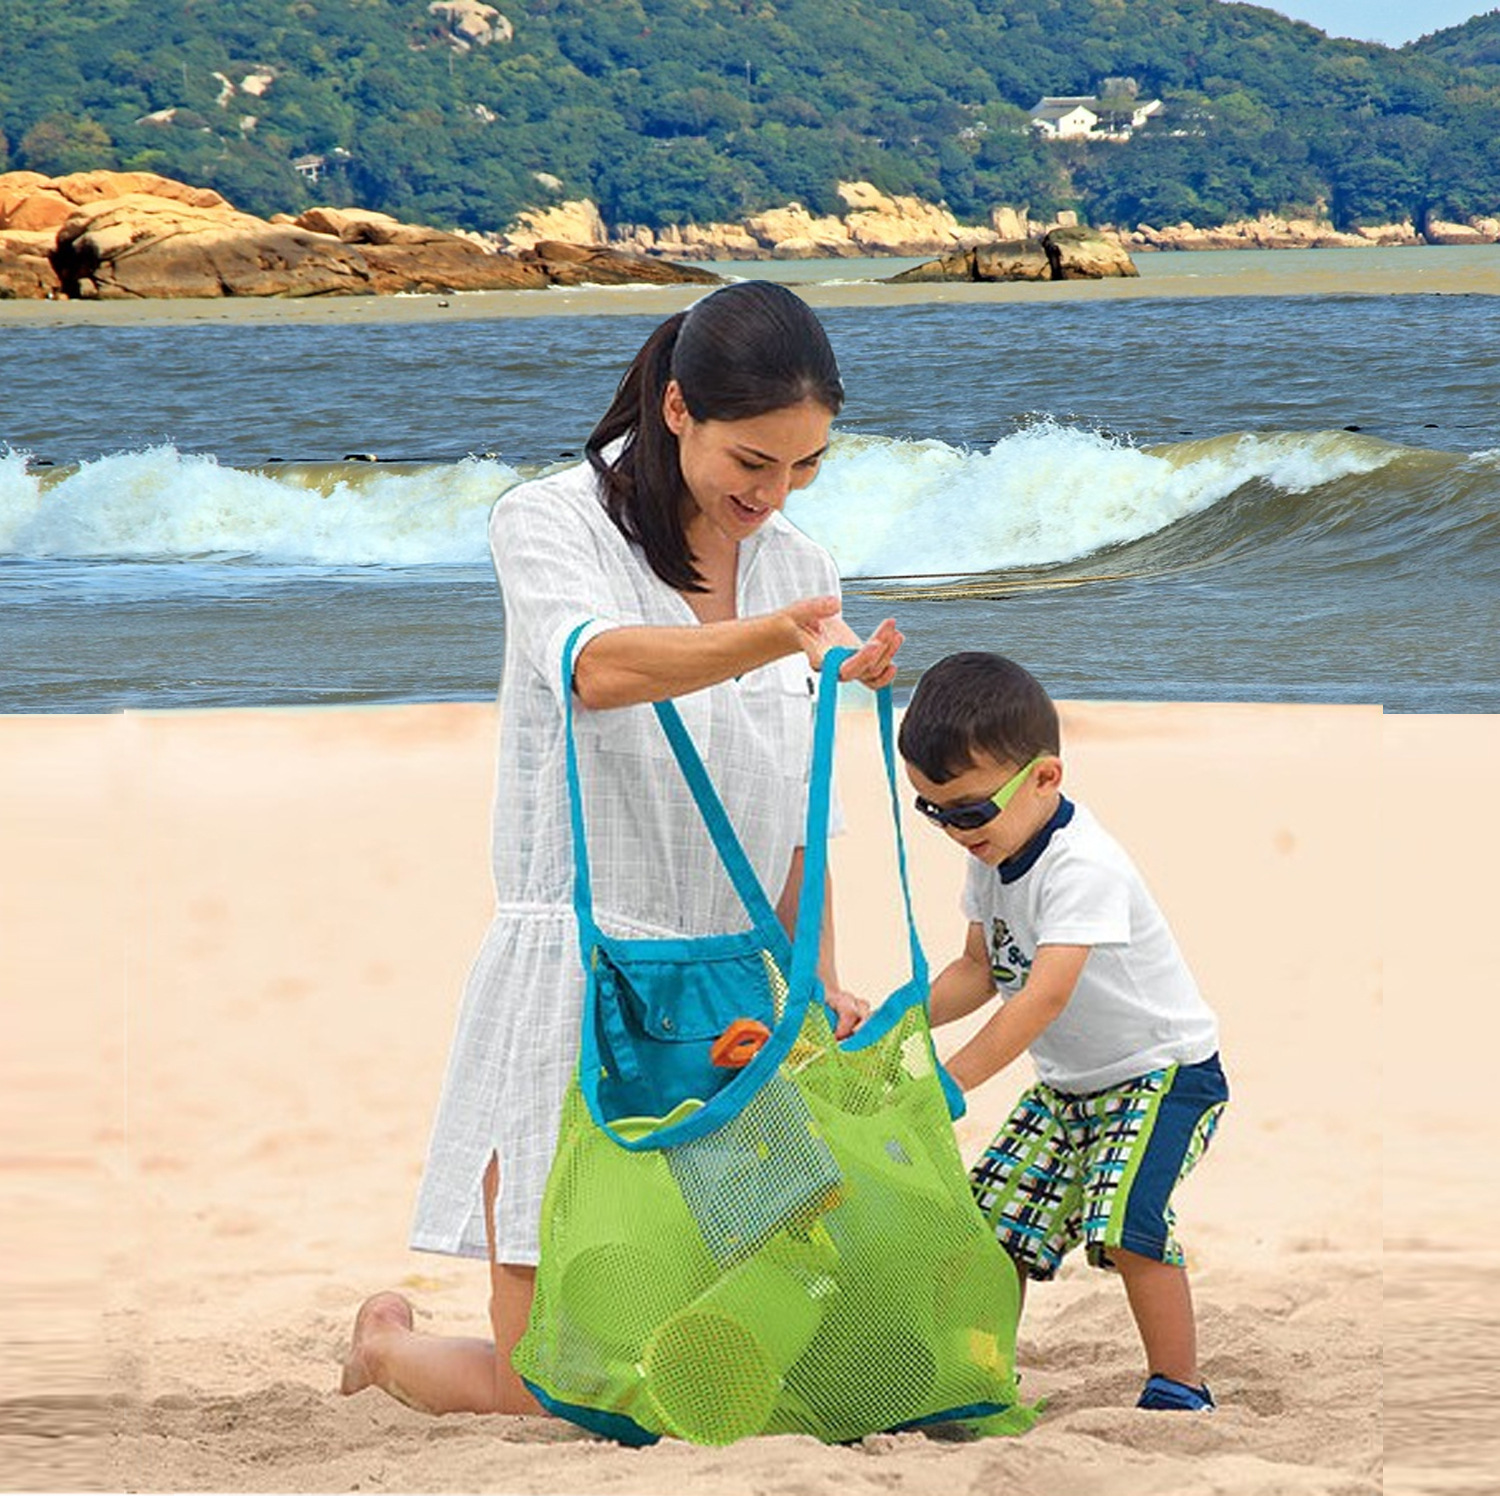 Pouch Mesh-Tool Storage-Toy Sand-Away Beach-Bag Baby Kids Children Tote 1-Pc Collection